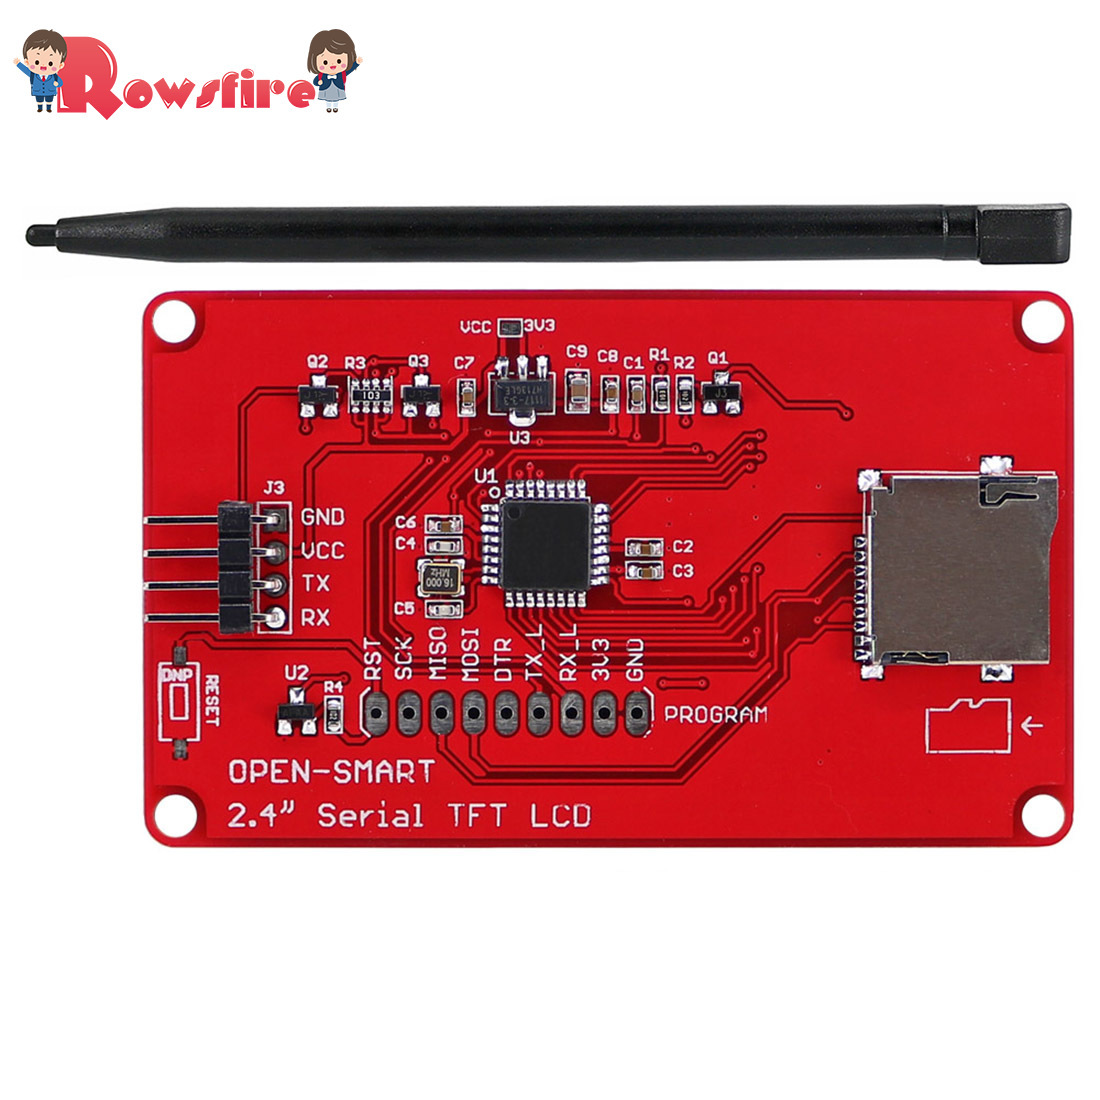 2.4 Inches UART Serial TFT LCD Touch Screen Expansion Shield With Touch Pen For Arduino/ST/51/RPi